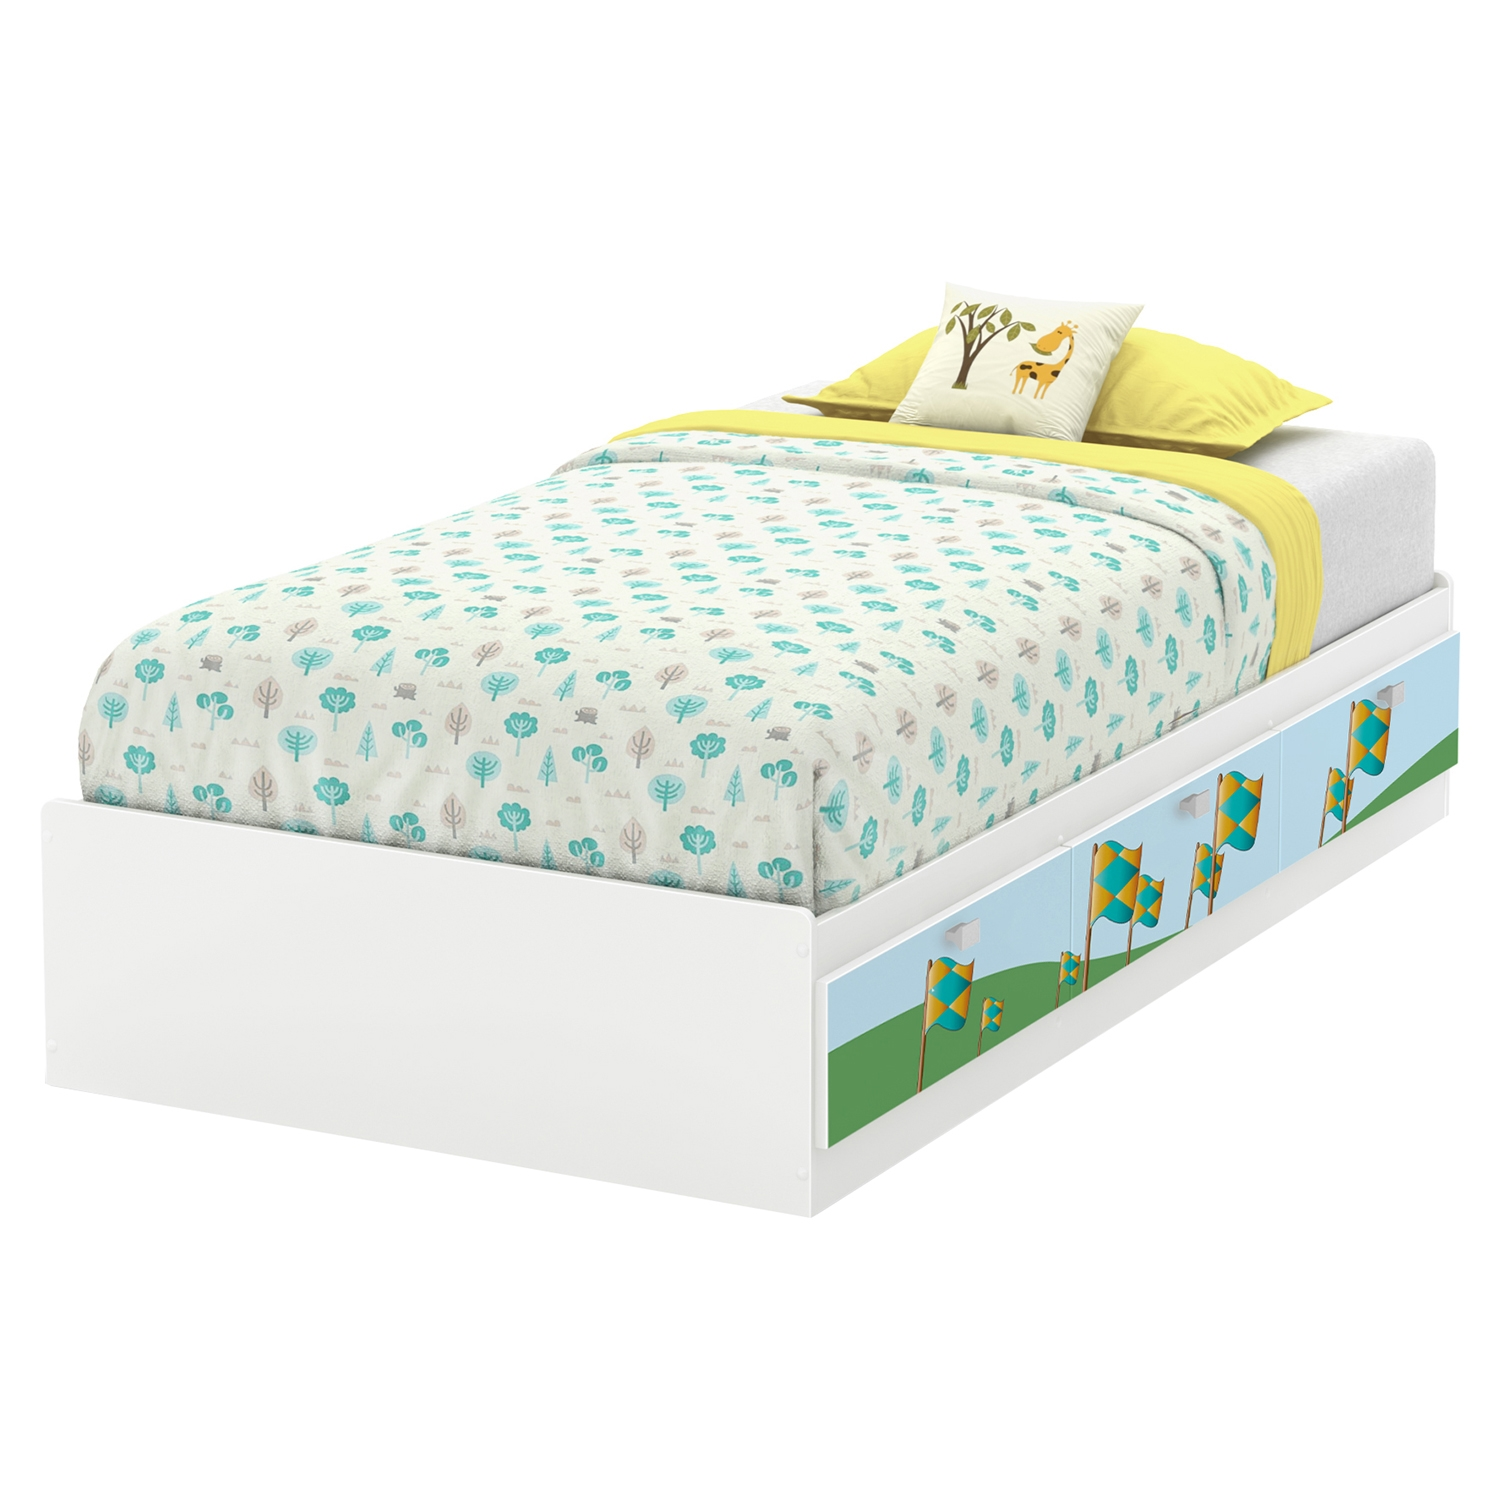 Andy Twin Mates Bed with Flag Decals - 3 Drawers, Pure White - SS-8050022K